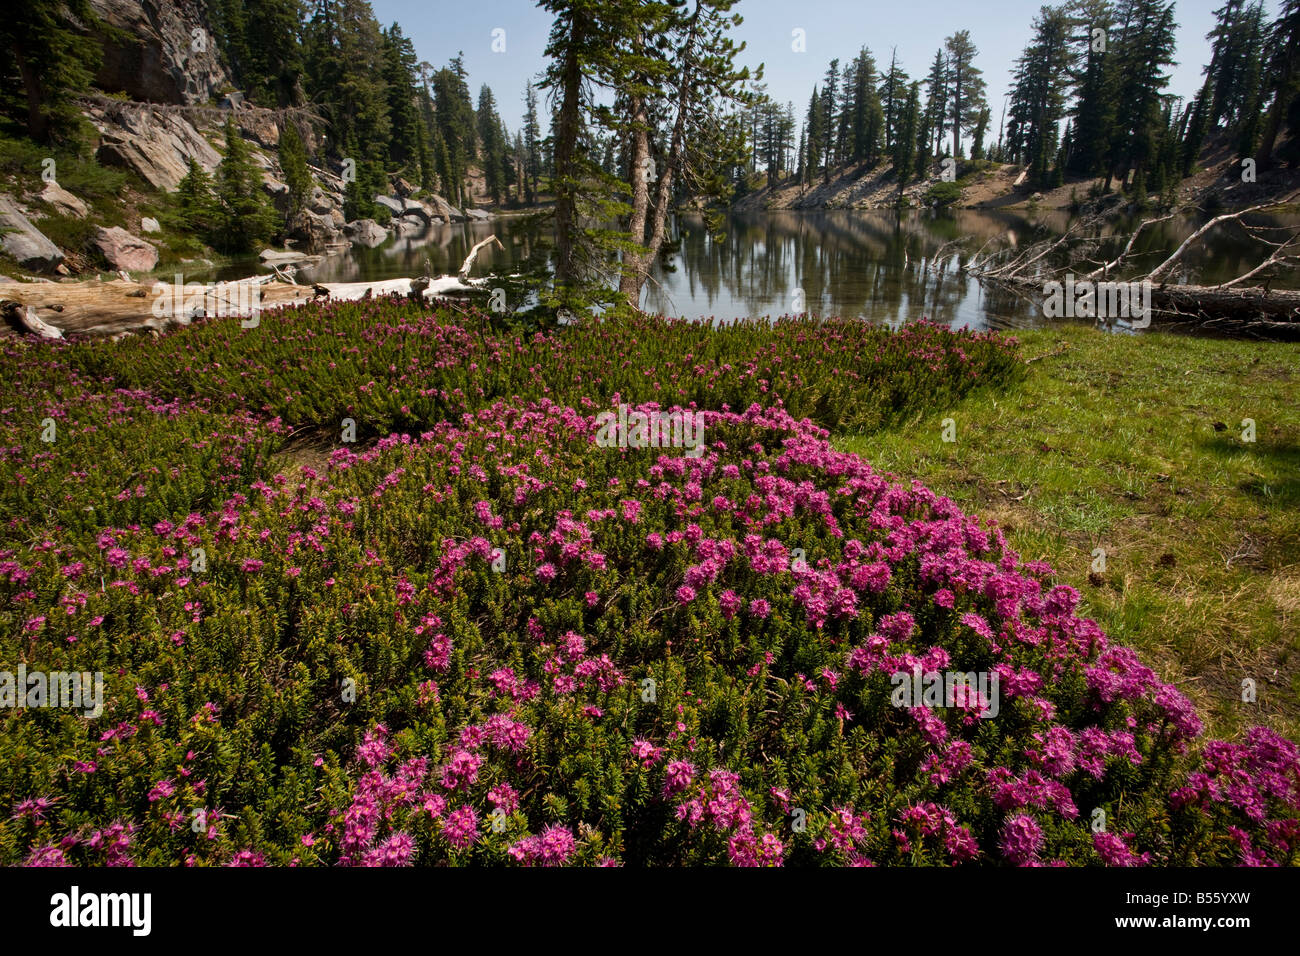 Red Heather or Purple Mountain Heath Phyllodoce breweri Mount Lassen National Park California - Stock Image